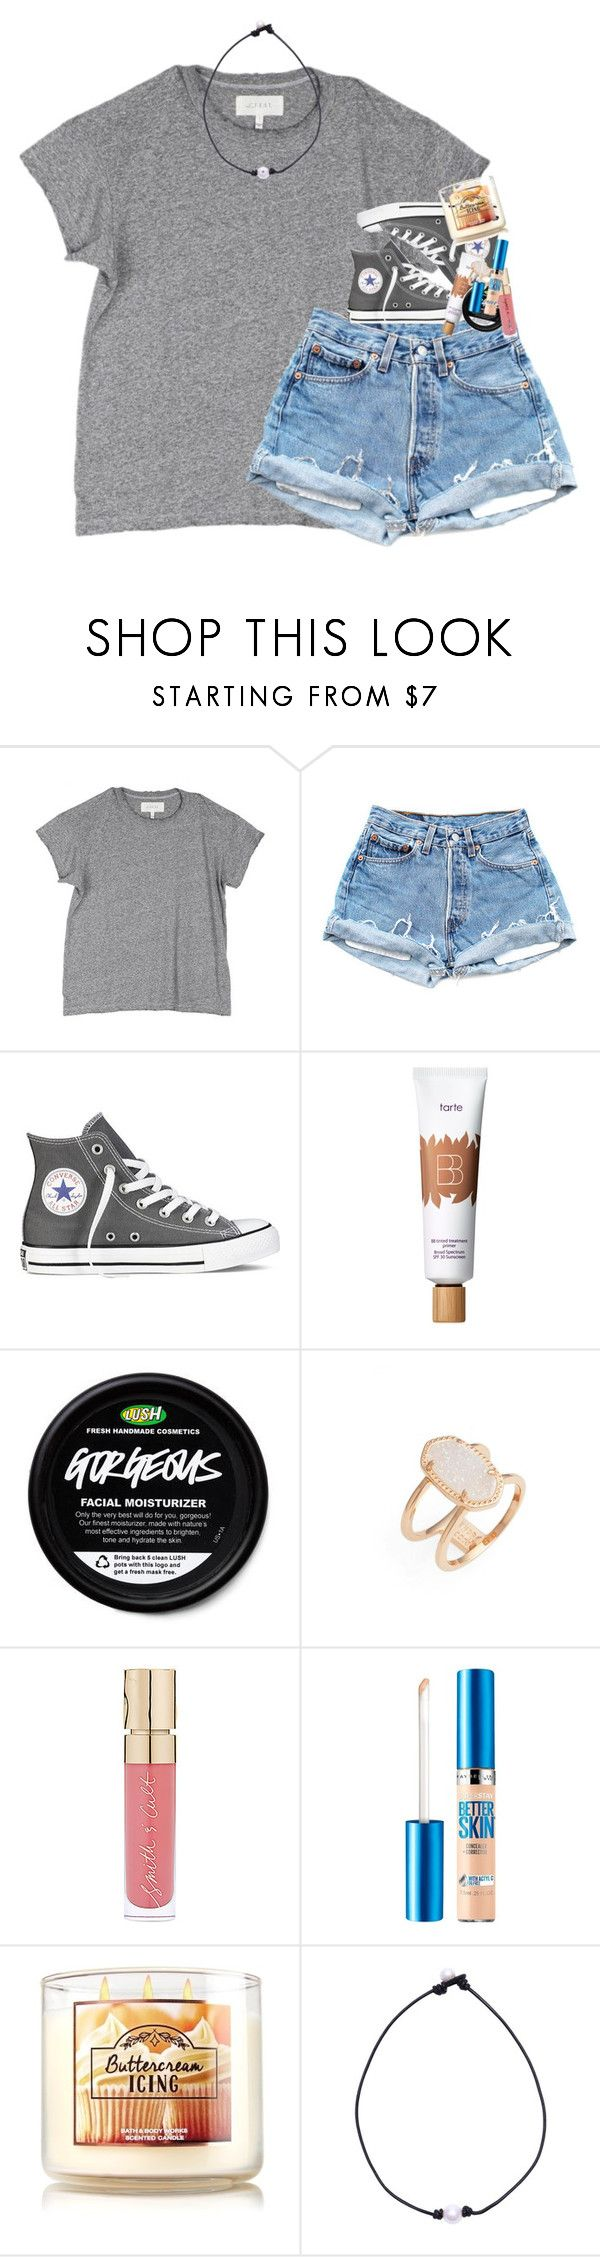 featuring The Great, Converse, tarte, Kendra Scott, Smith & Cult and Maybelline